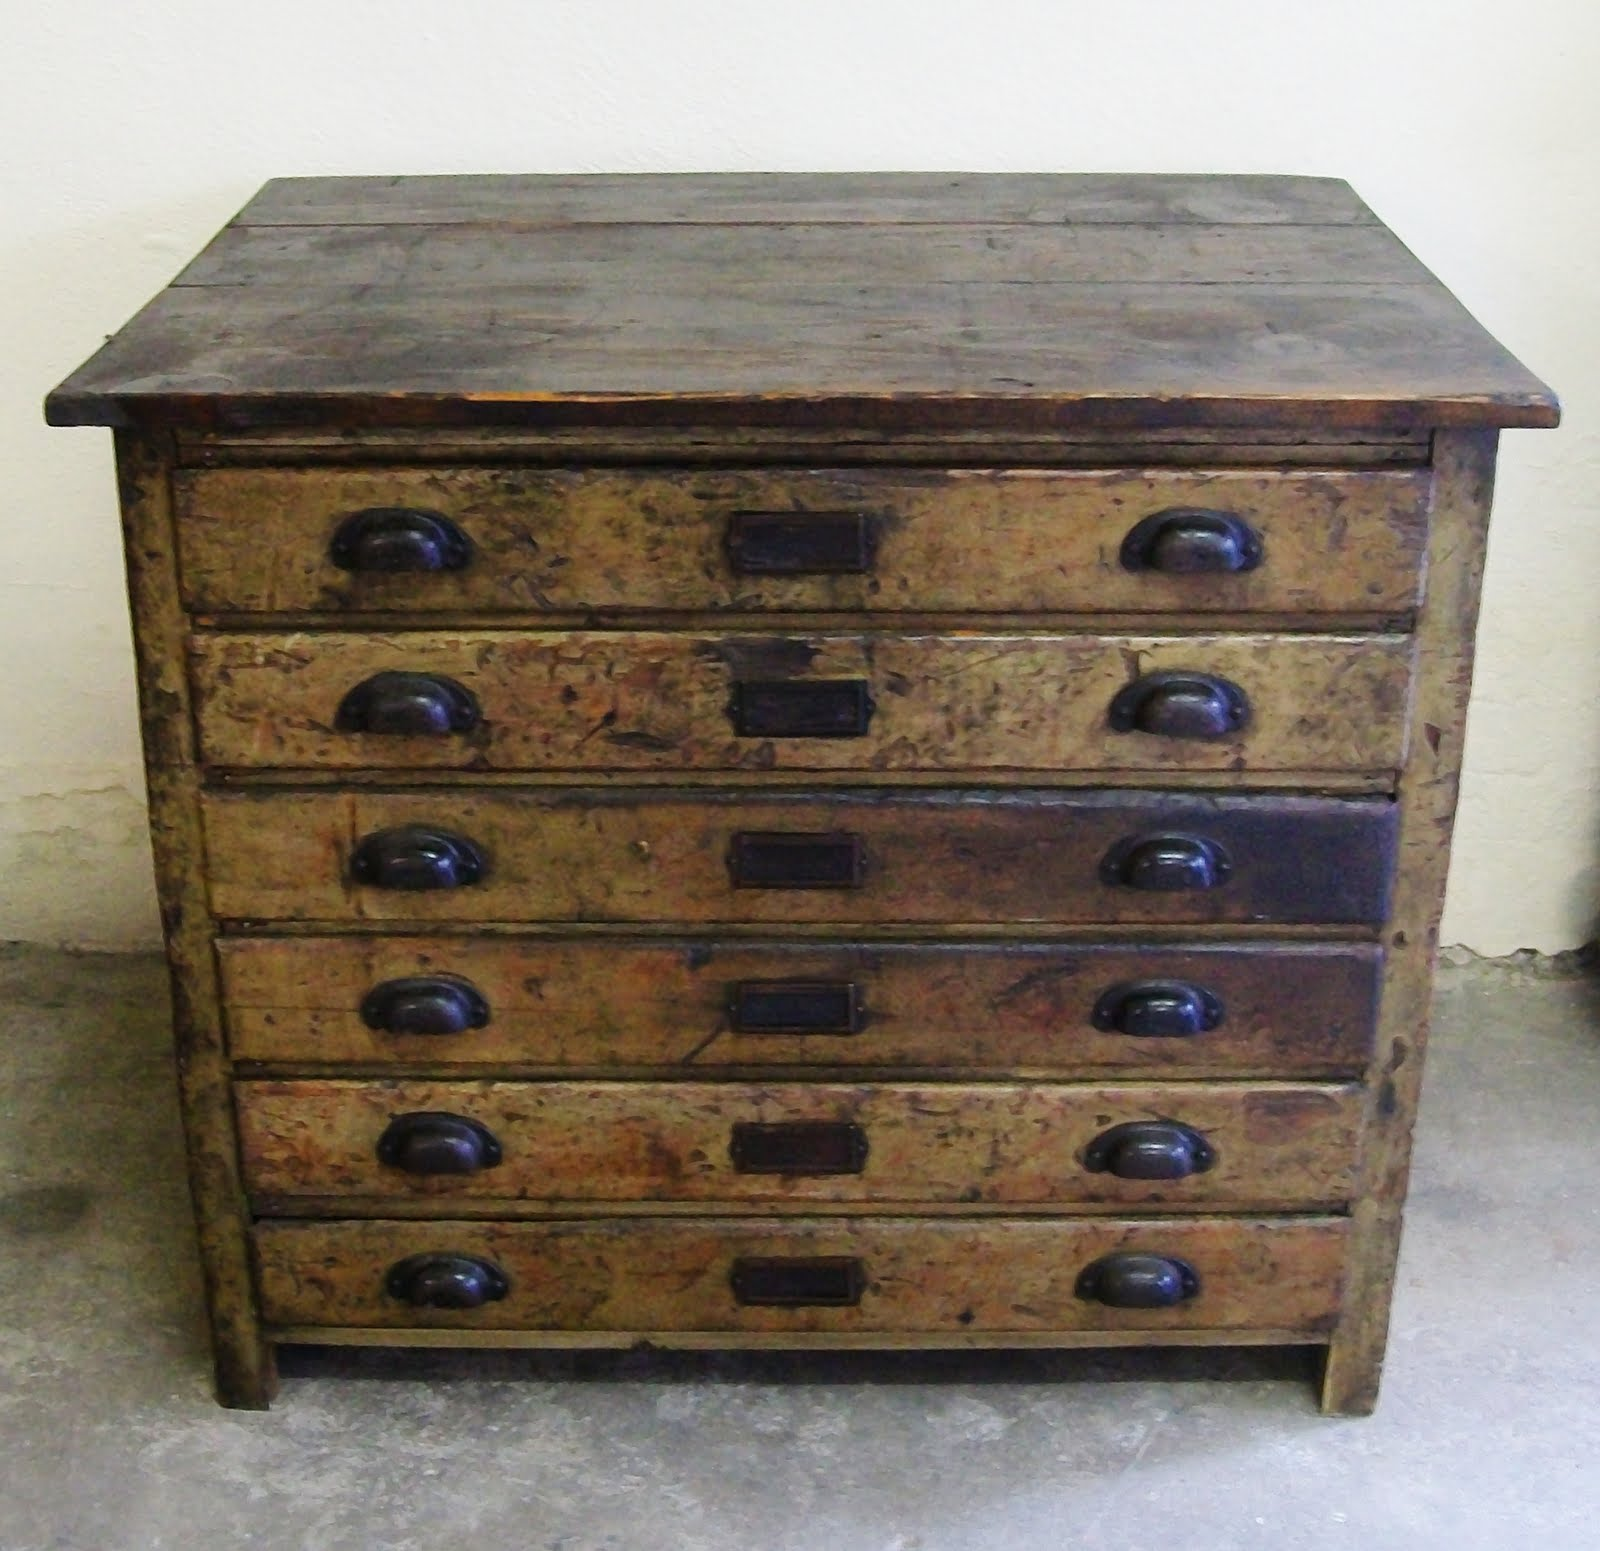 1000+ images about CHESTS / DRESSERS / DRAWERS / DESKS on ...